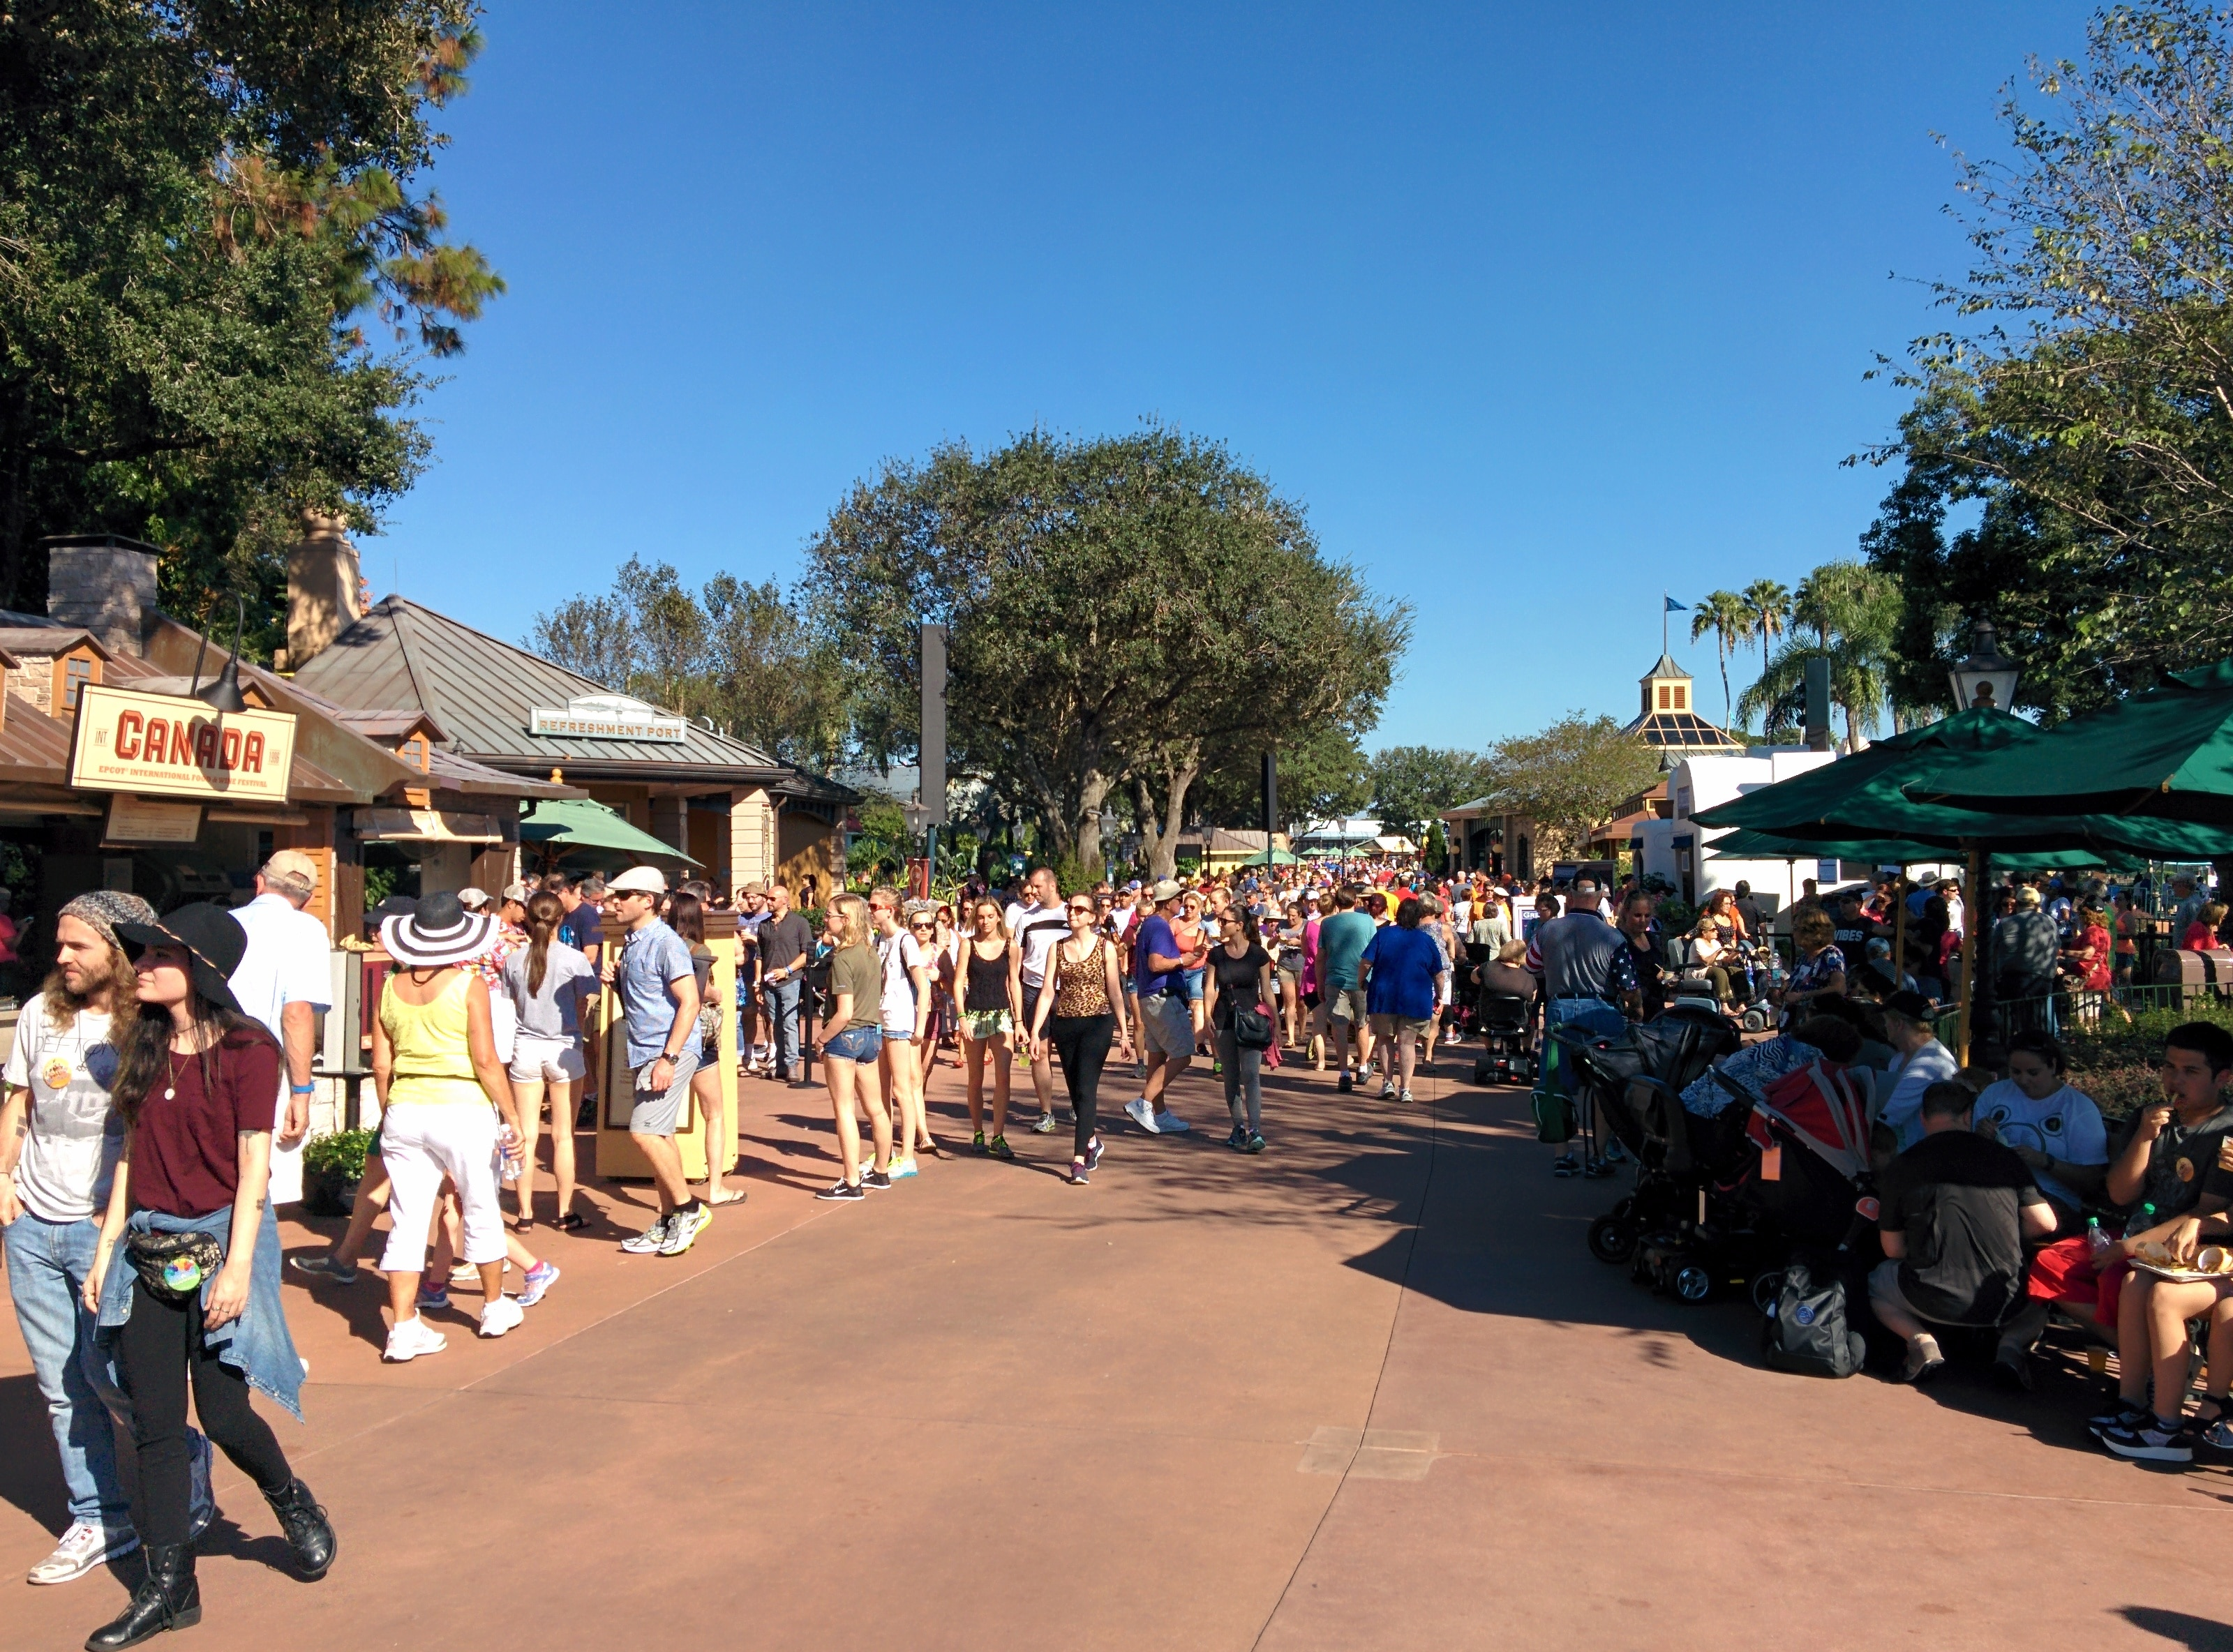 High crowds at Epcot during the food & wine festival